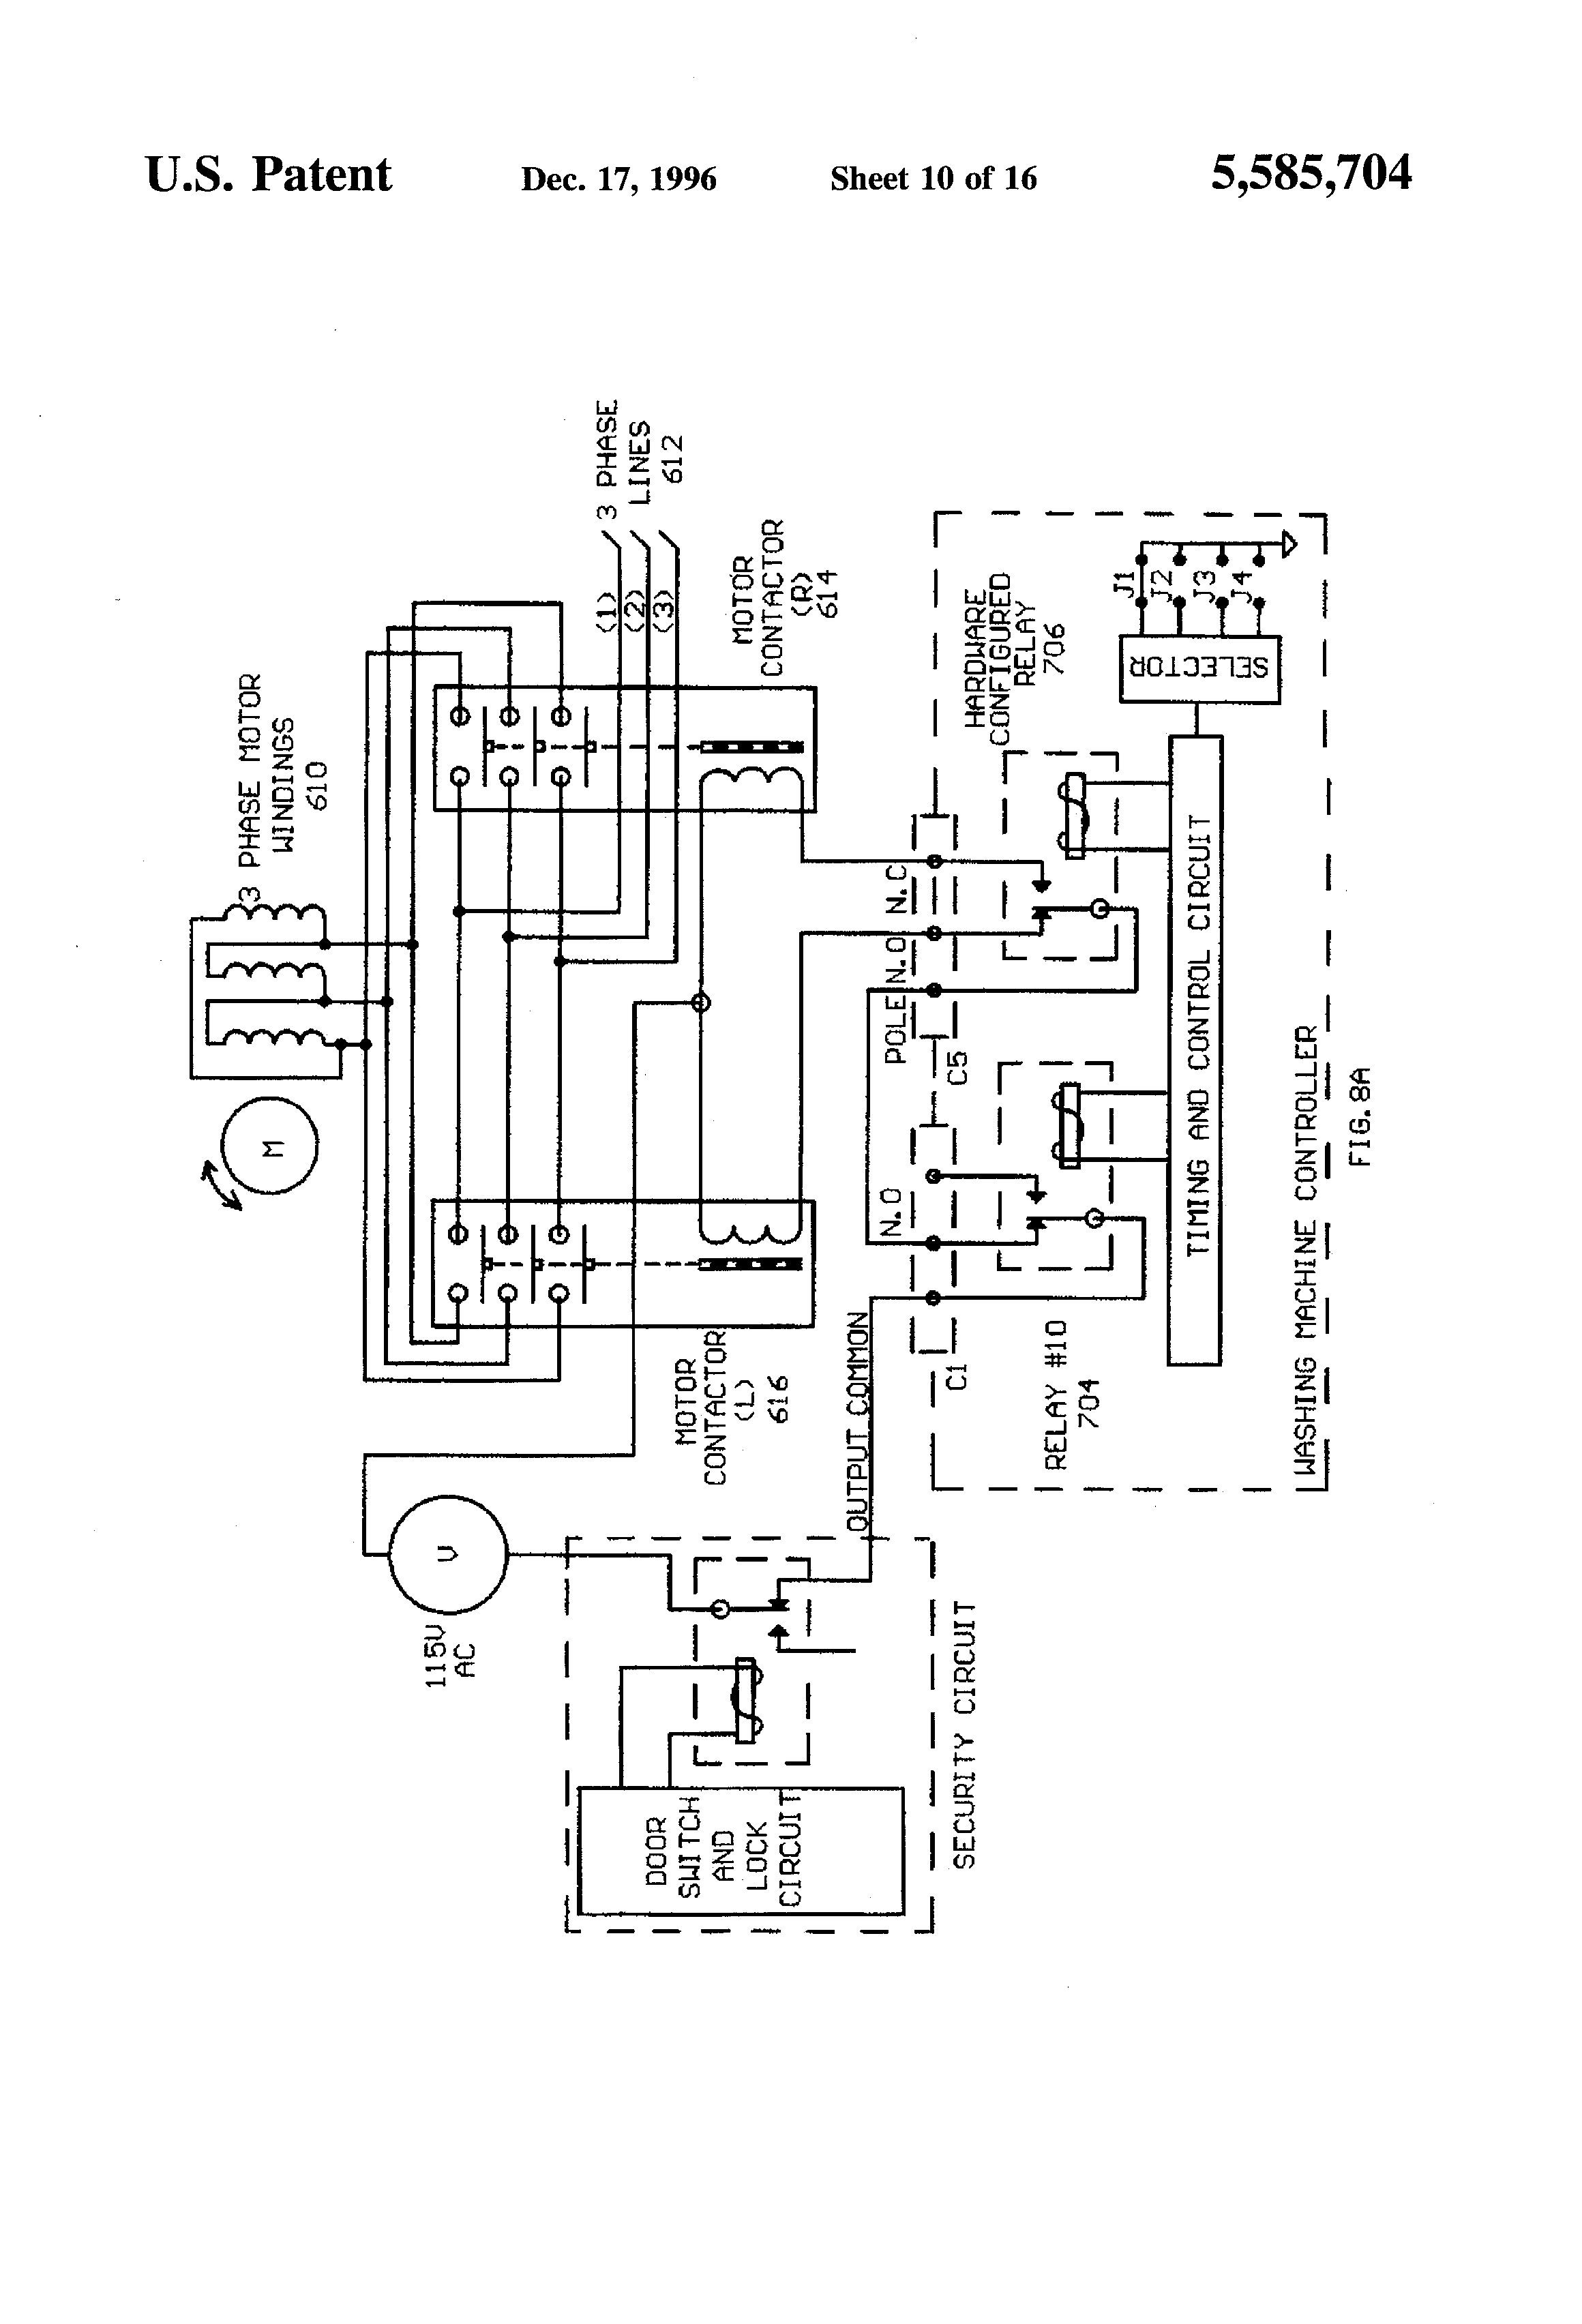 wiring diagram of washing machine motor wiring diagram washing how to read washing machine wiring diagram [ 2320 x 3408 Pixel ]